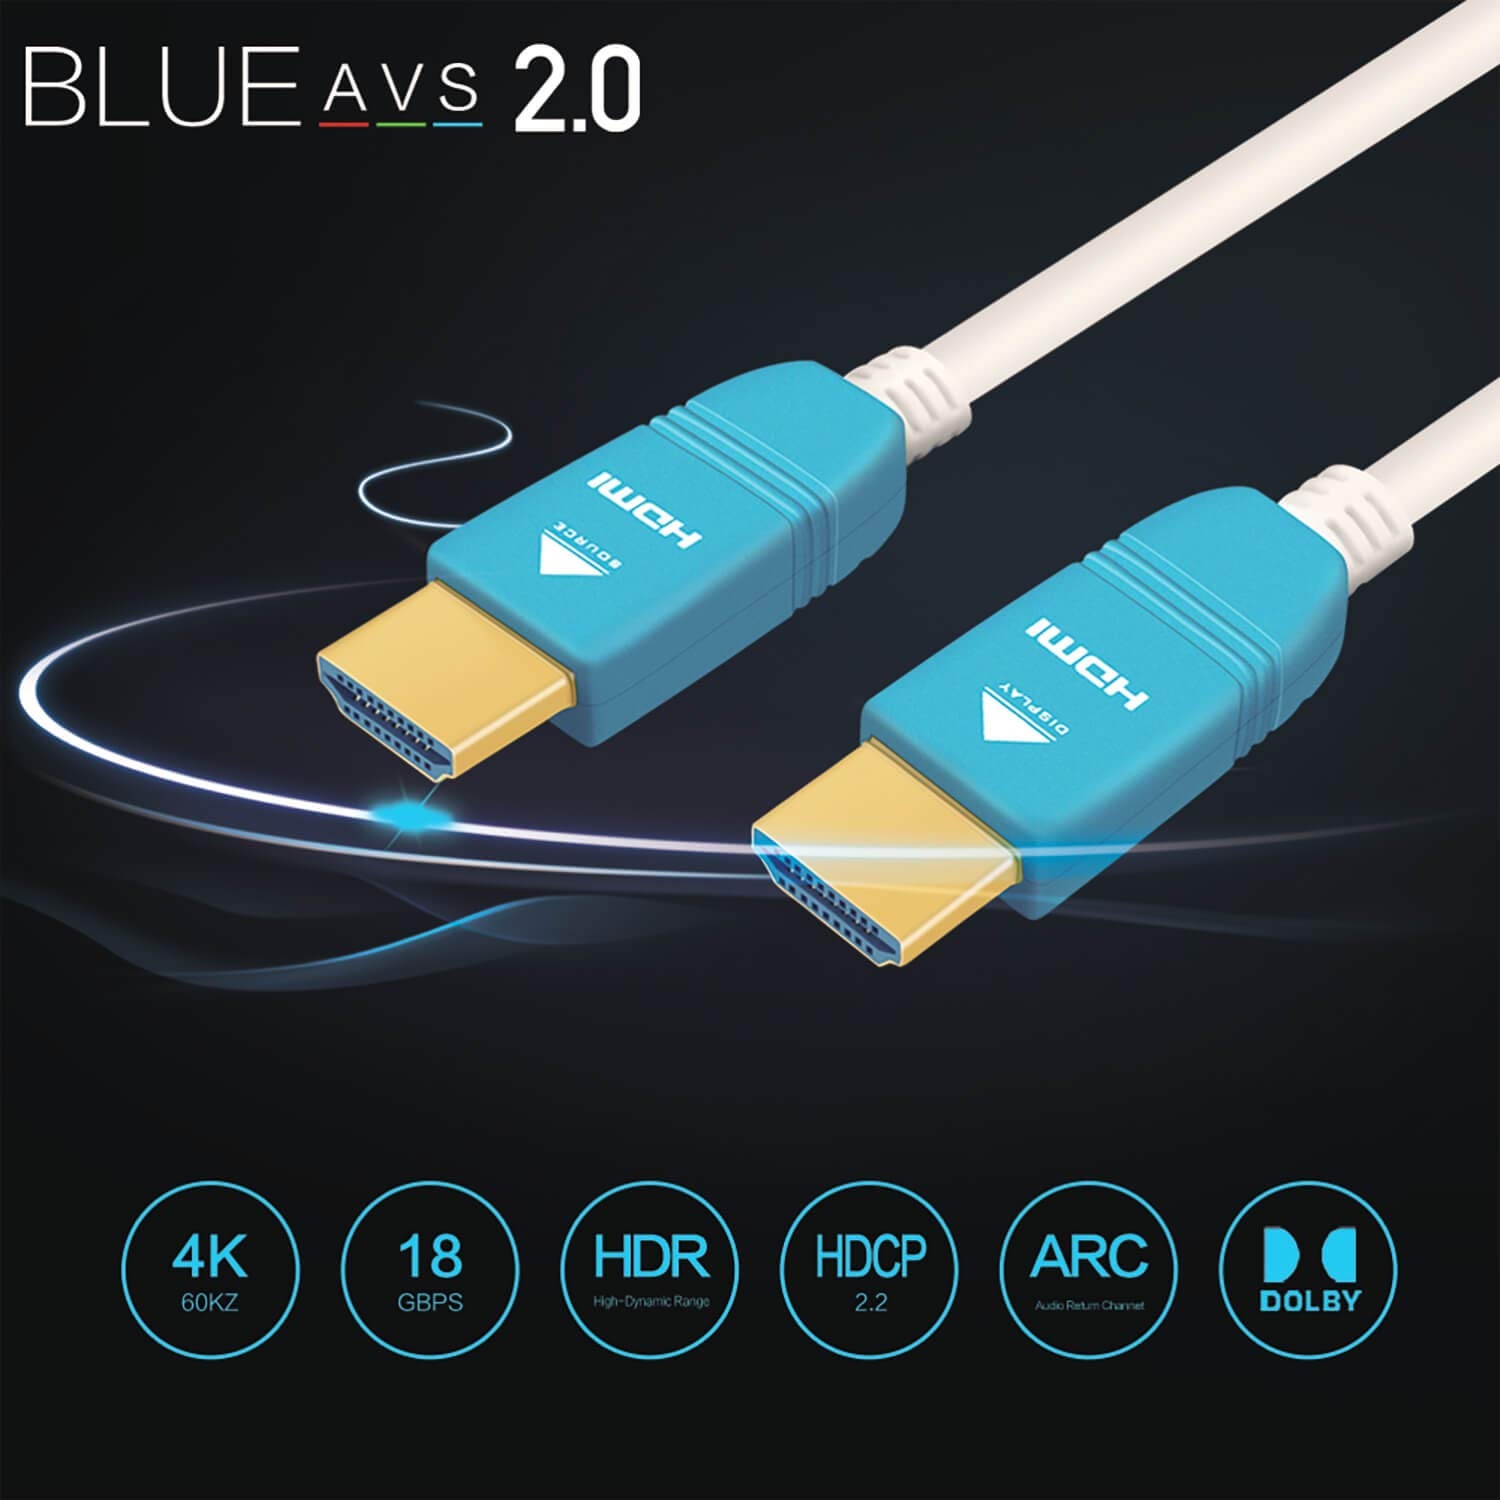 HDMI Cable 30ft, BlueAVS Fiber Optic Cable 4K 60Hz 9m HDMI 2.0b High-Speed 18Gbps Dolby Vision HDCP2.2, 3D / HDR/ARC, 4:4:4/4:2:2/4:2:0 White by BlueAVS (Image #7)